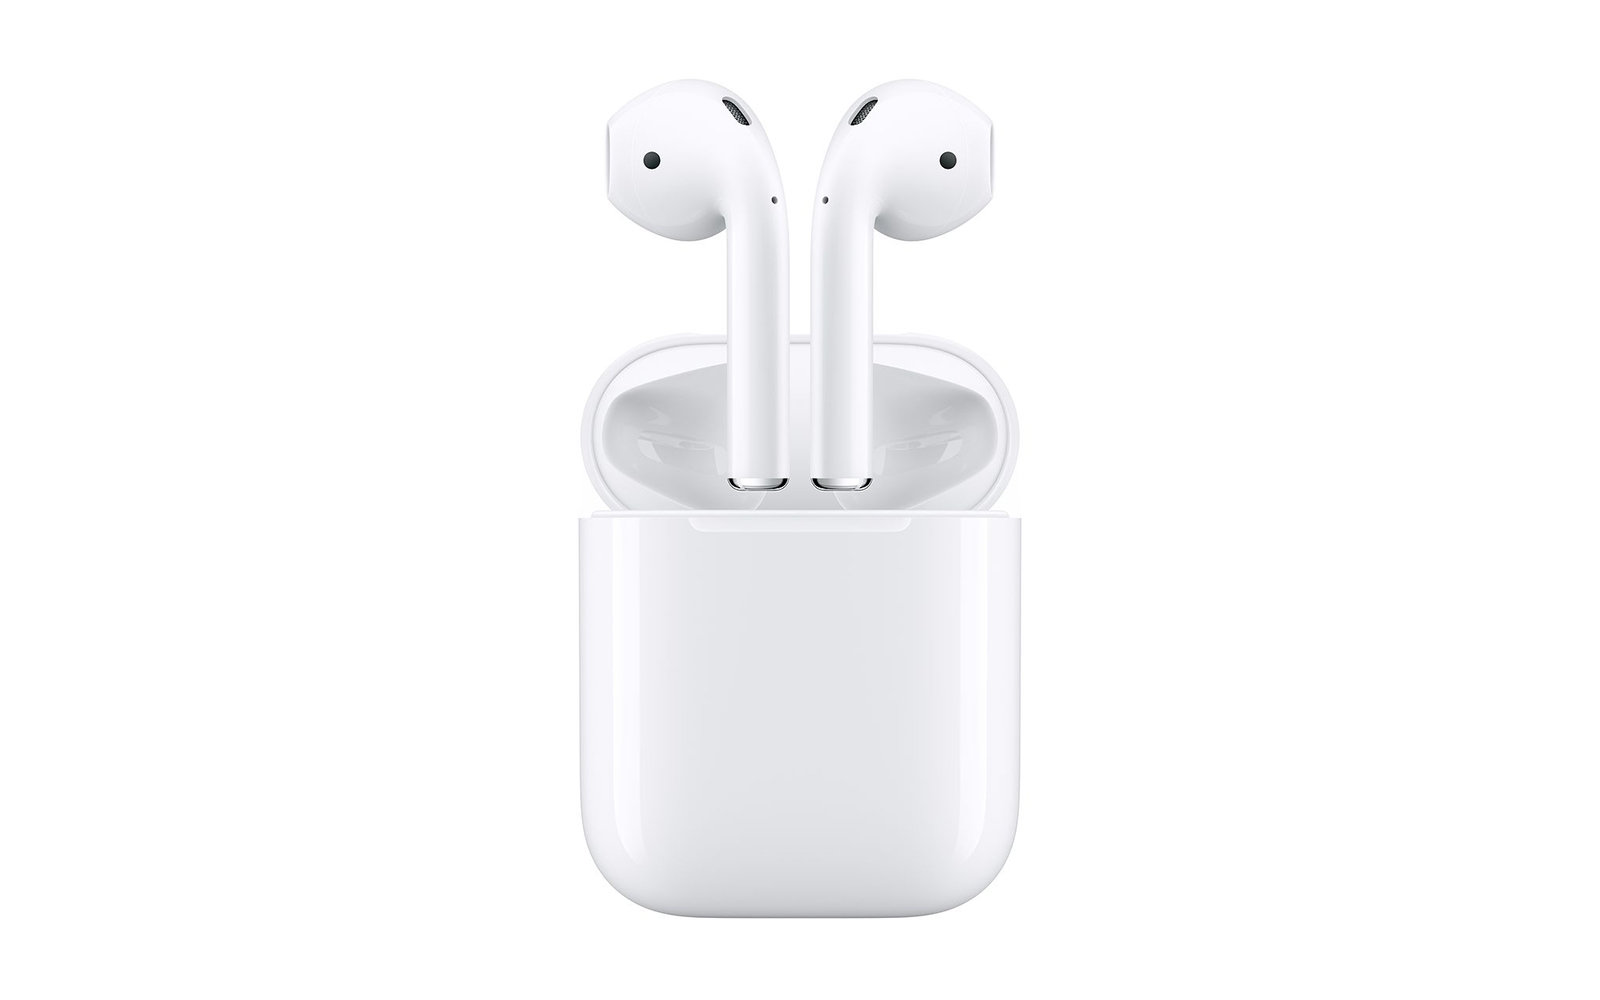 Apple AirPods Headphones